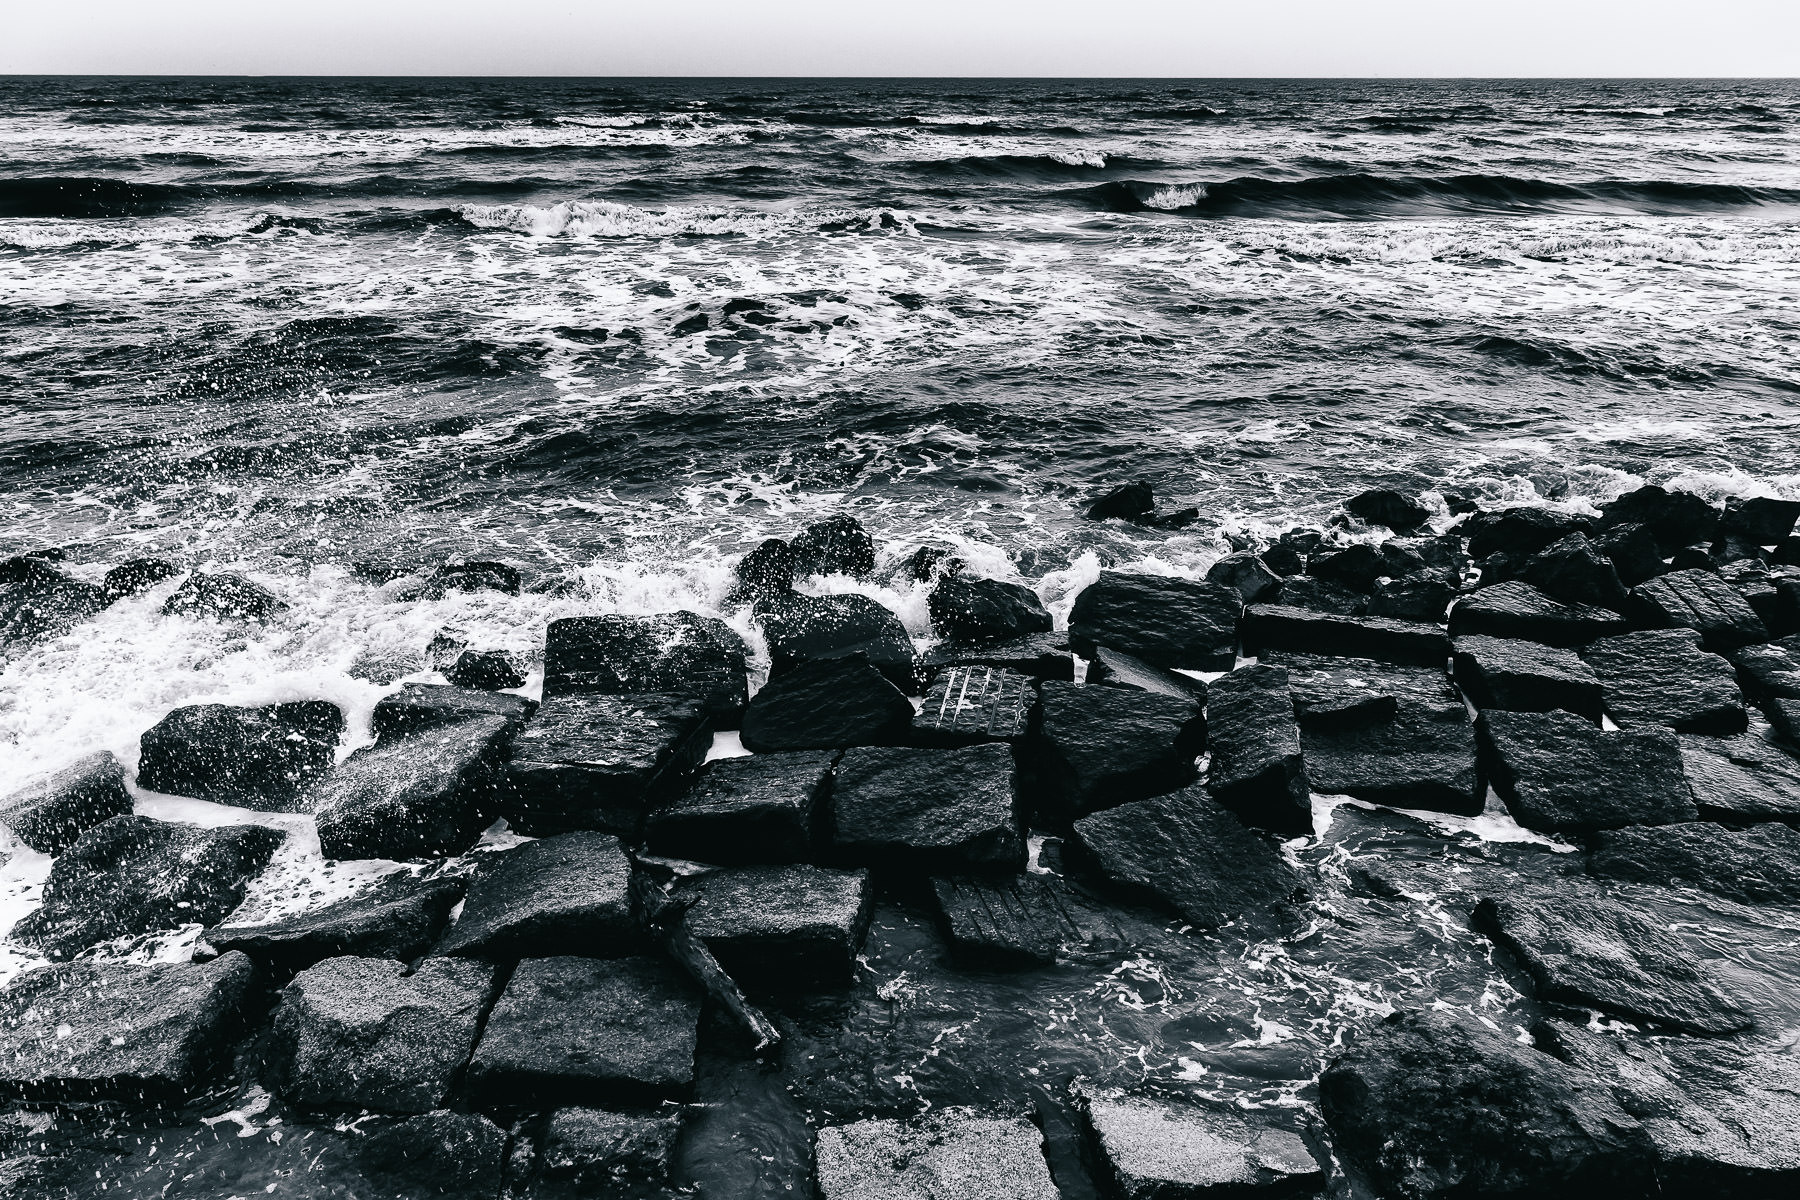 The Gulf of Mexico surf crashes over granite blocks along the seawall in Galveston, Texas.